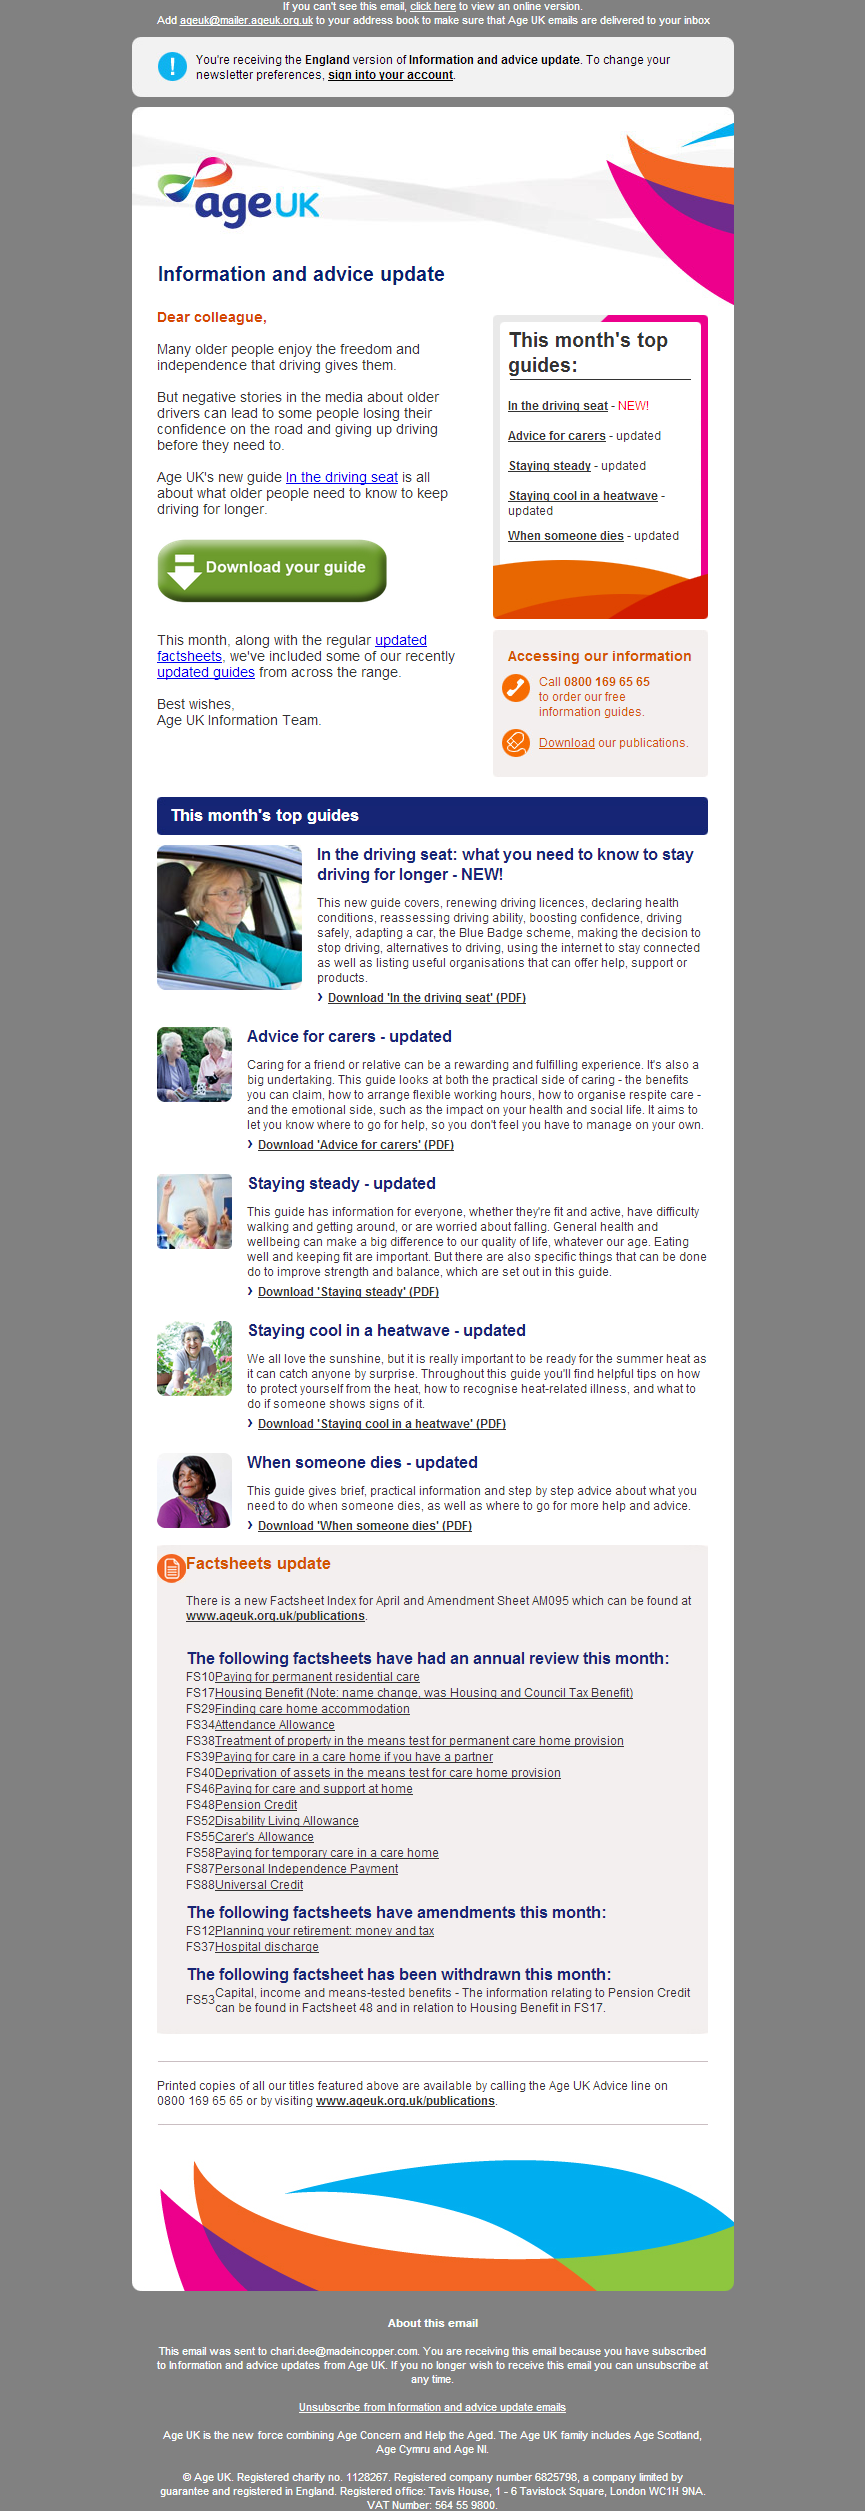 Age UK - New driving guide from Age UK, and updated guides from across the range